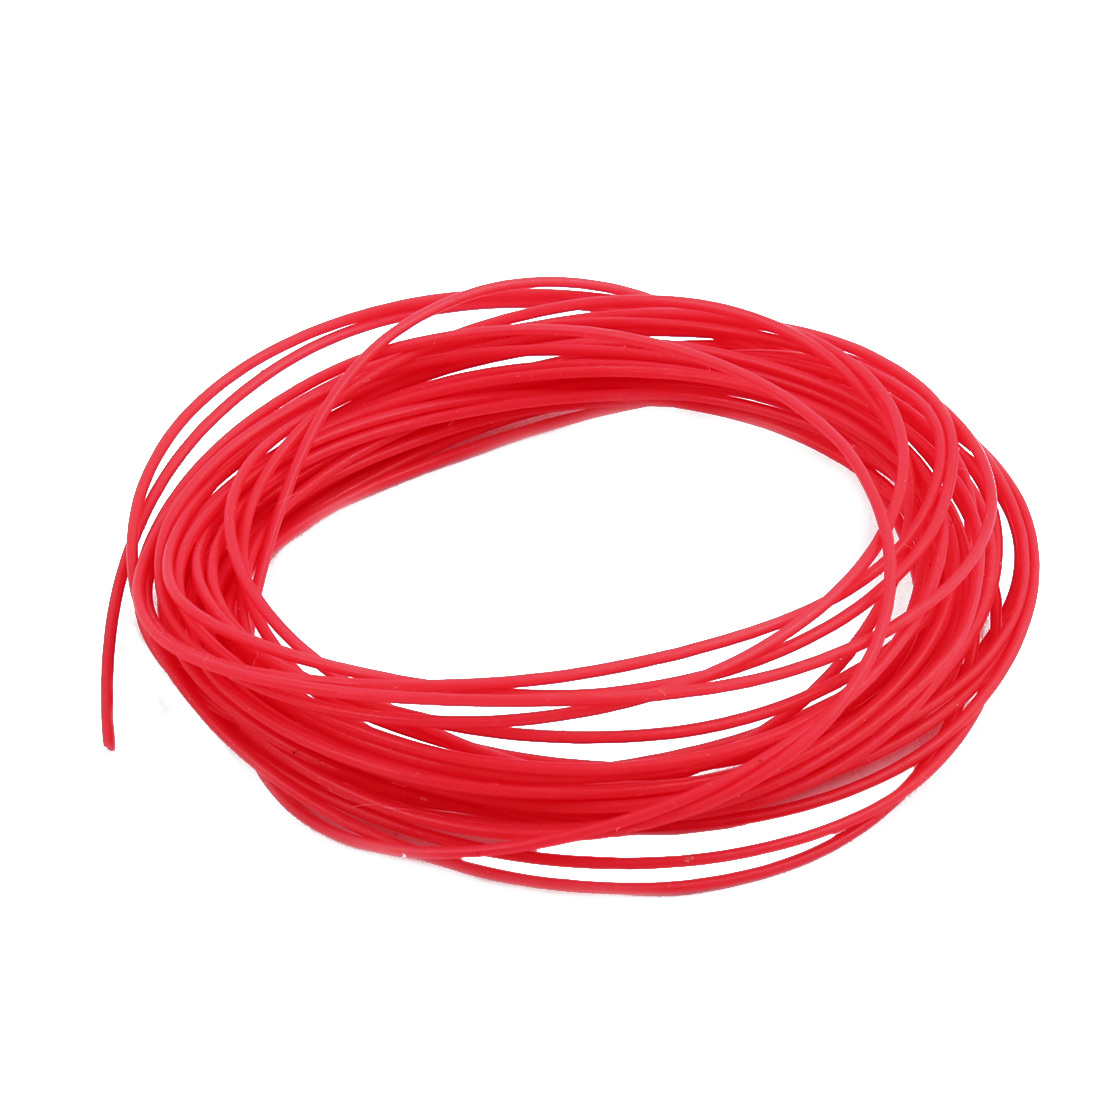 0.71mmx1.01mm PTFE Resistant High Temperature Red Tubing 5 Meters 16.4Ft